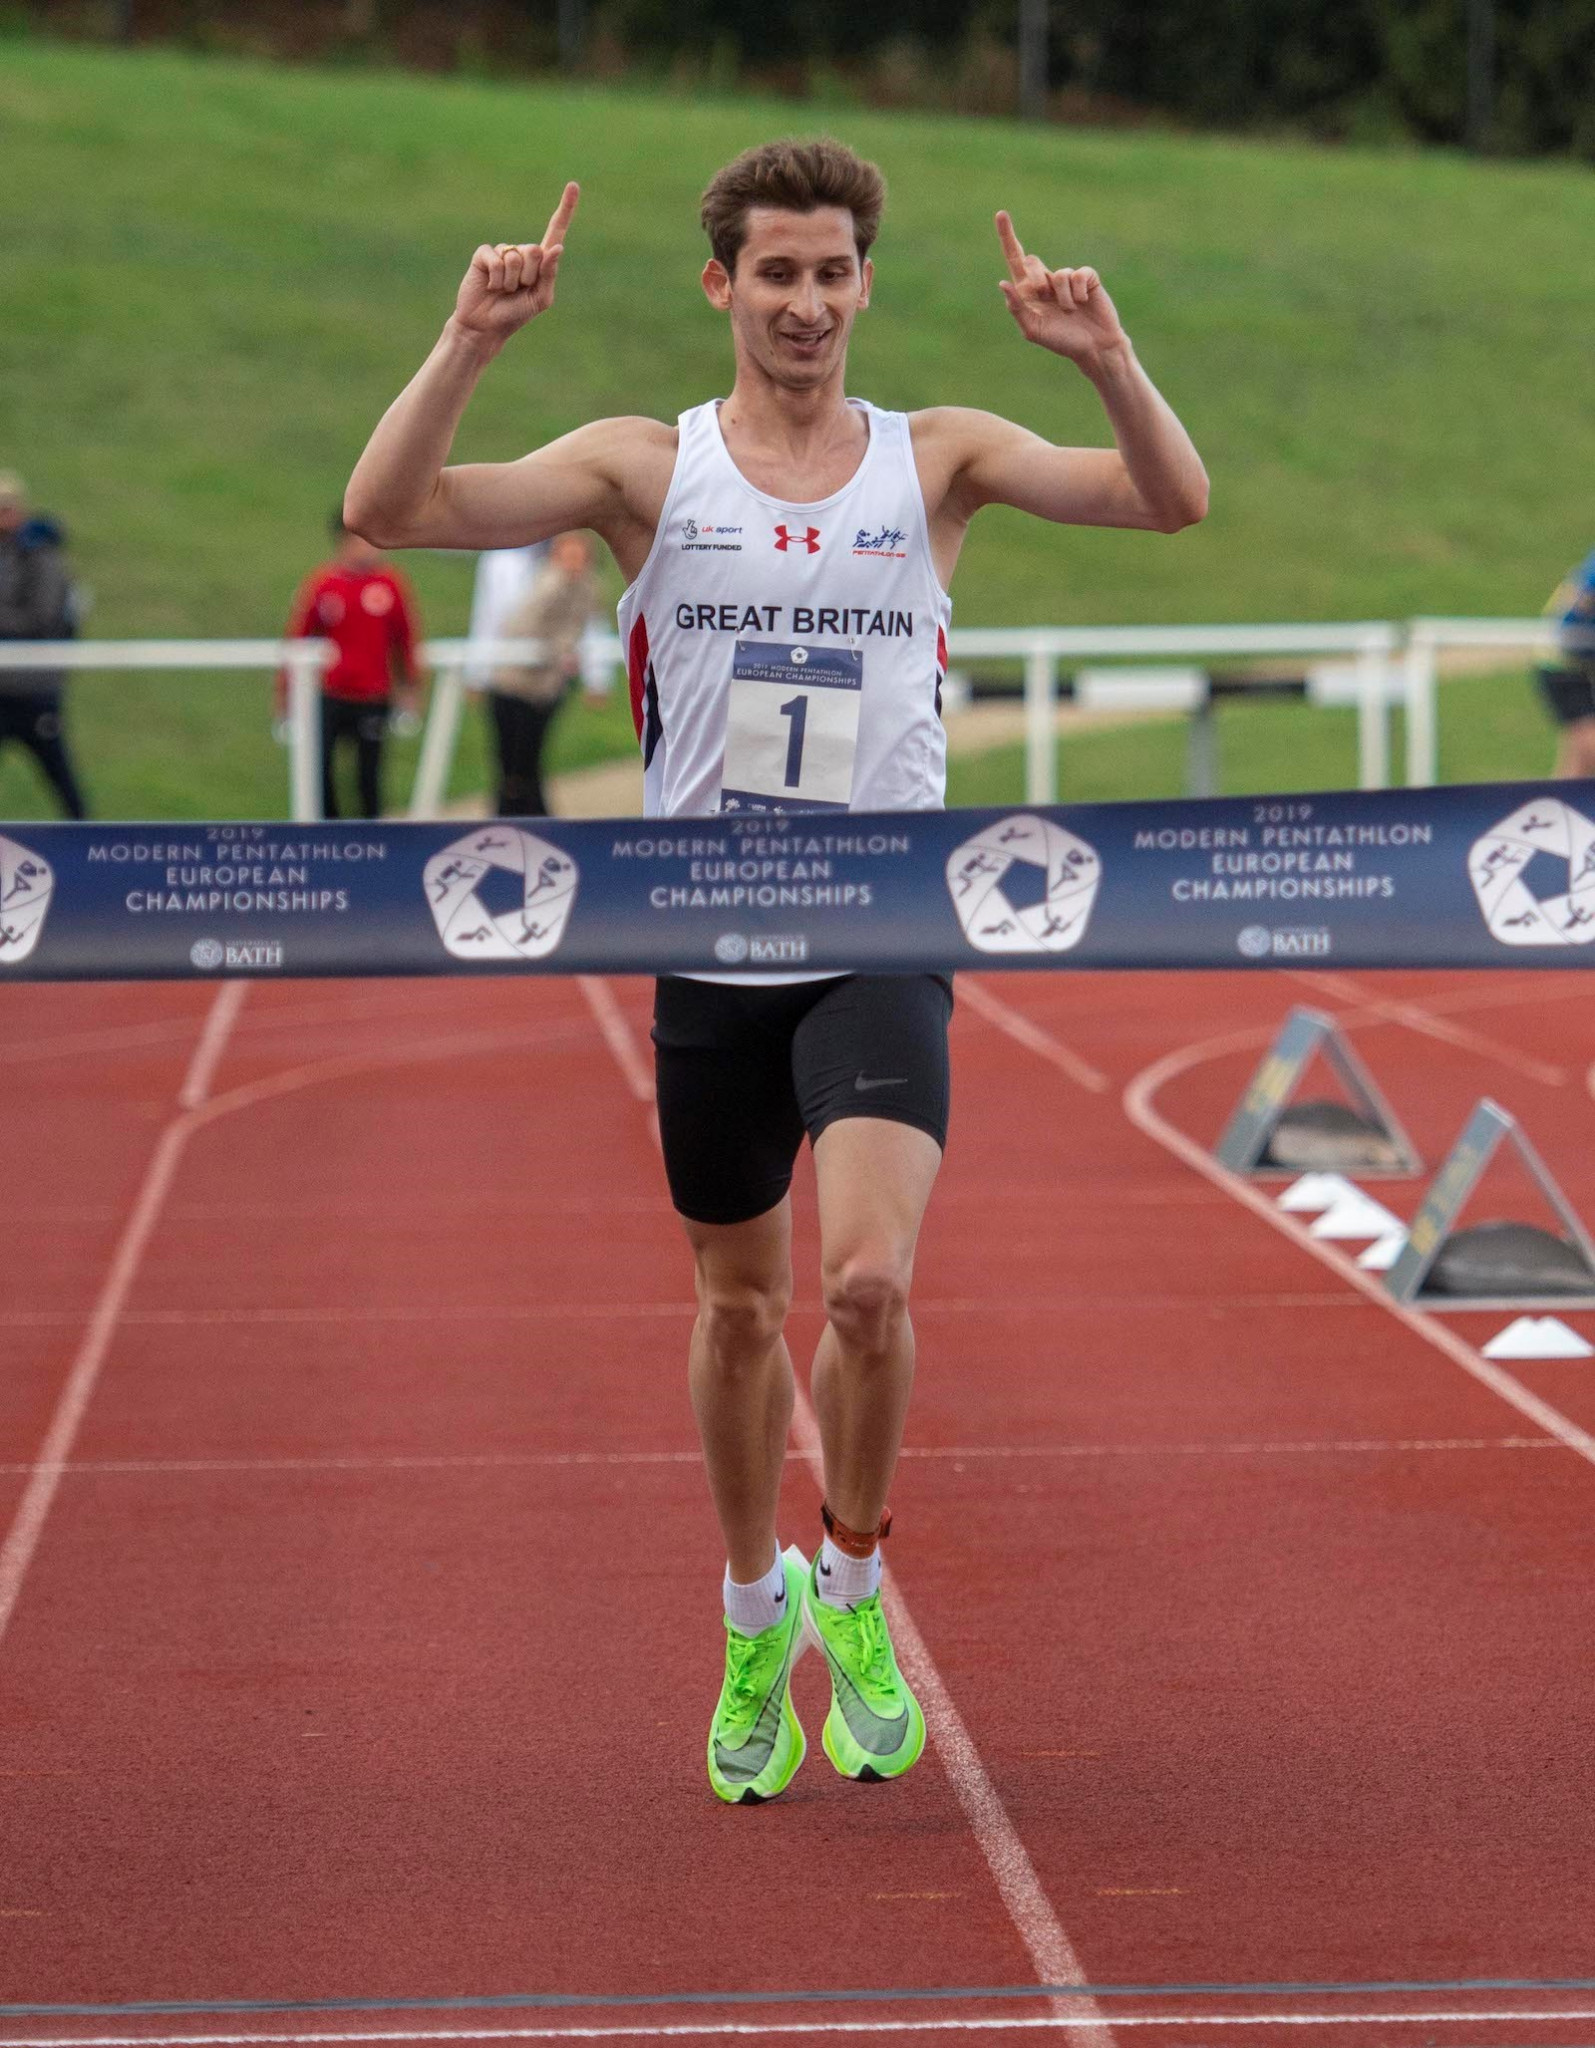 World modern pentathlon champion Jamie Cooke has added the European Championship to his collection ©Clare Green